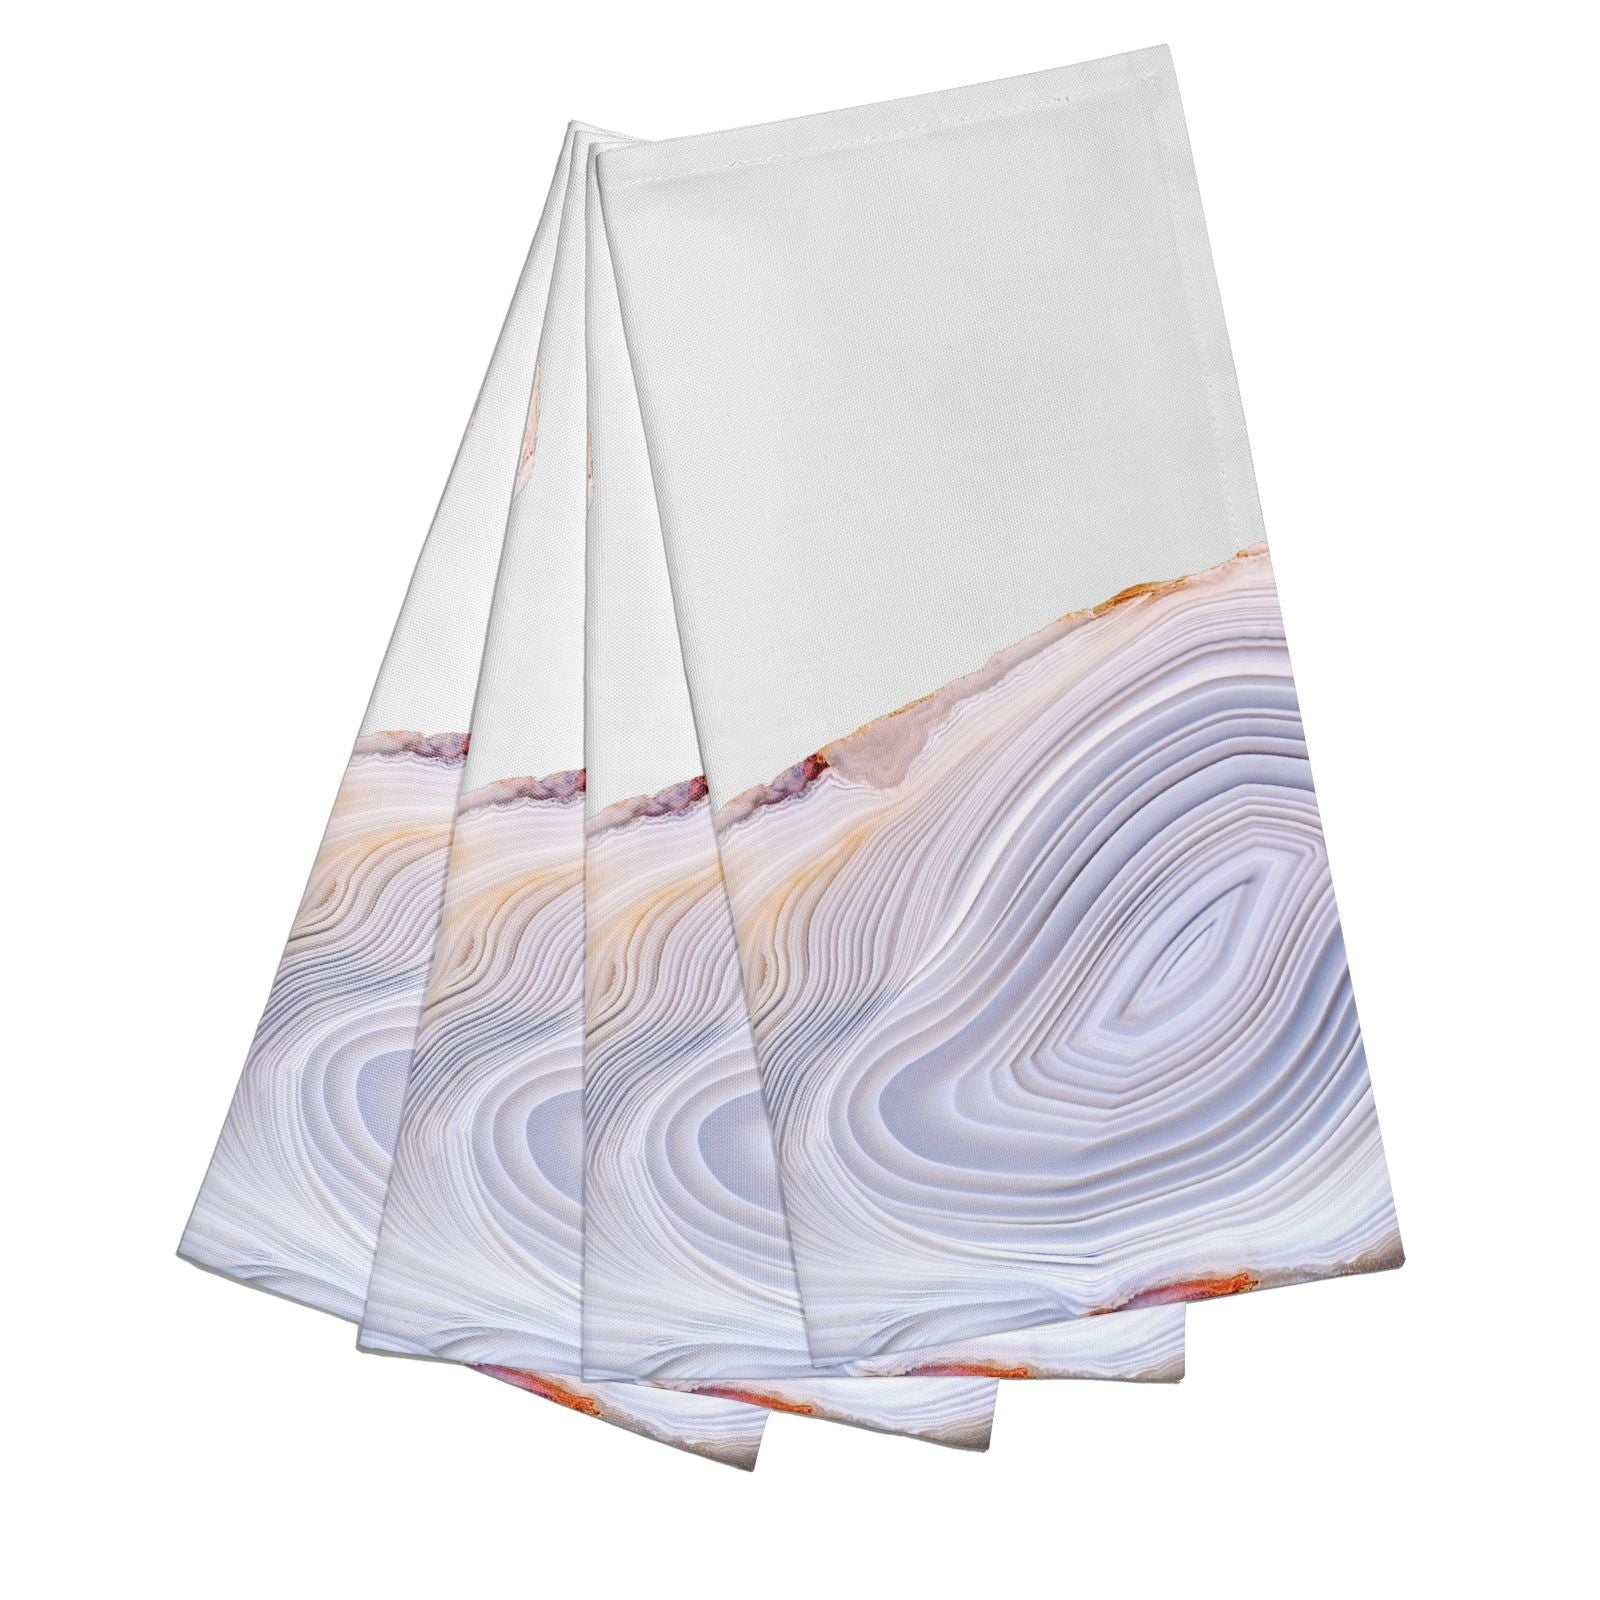 Agate Pale Pink and Blue Cotton Napkins Set of 4